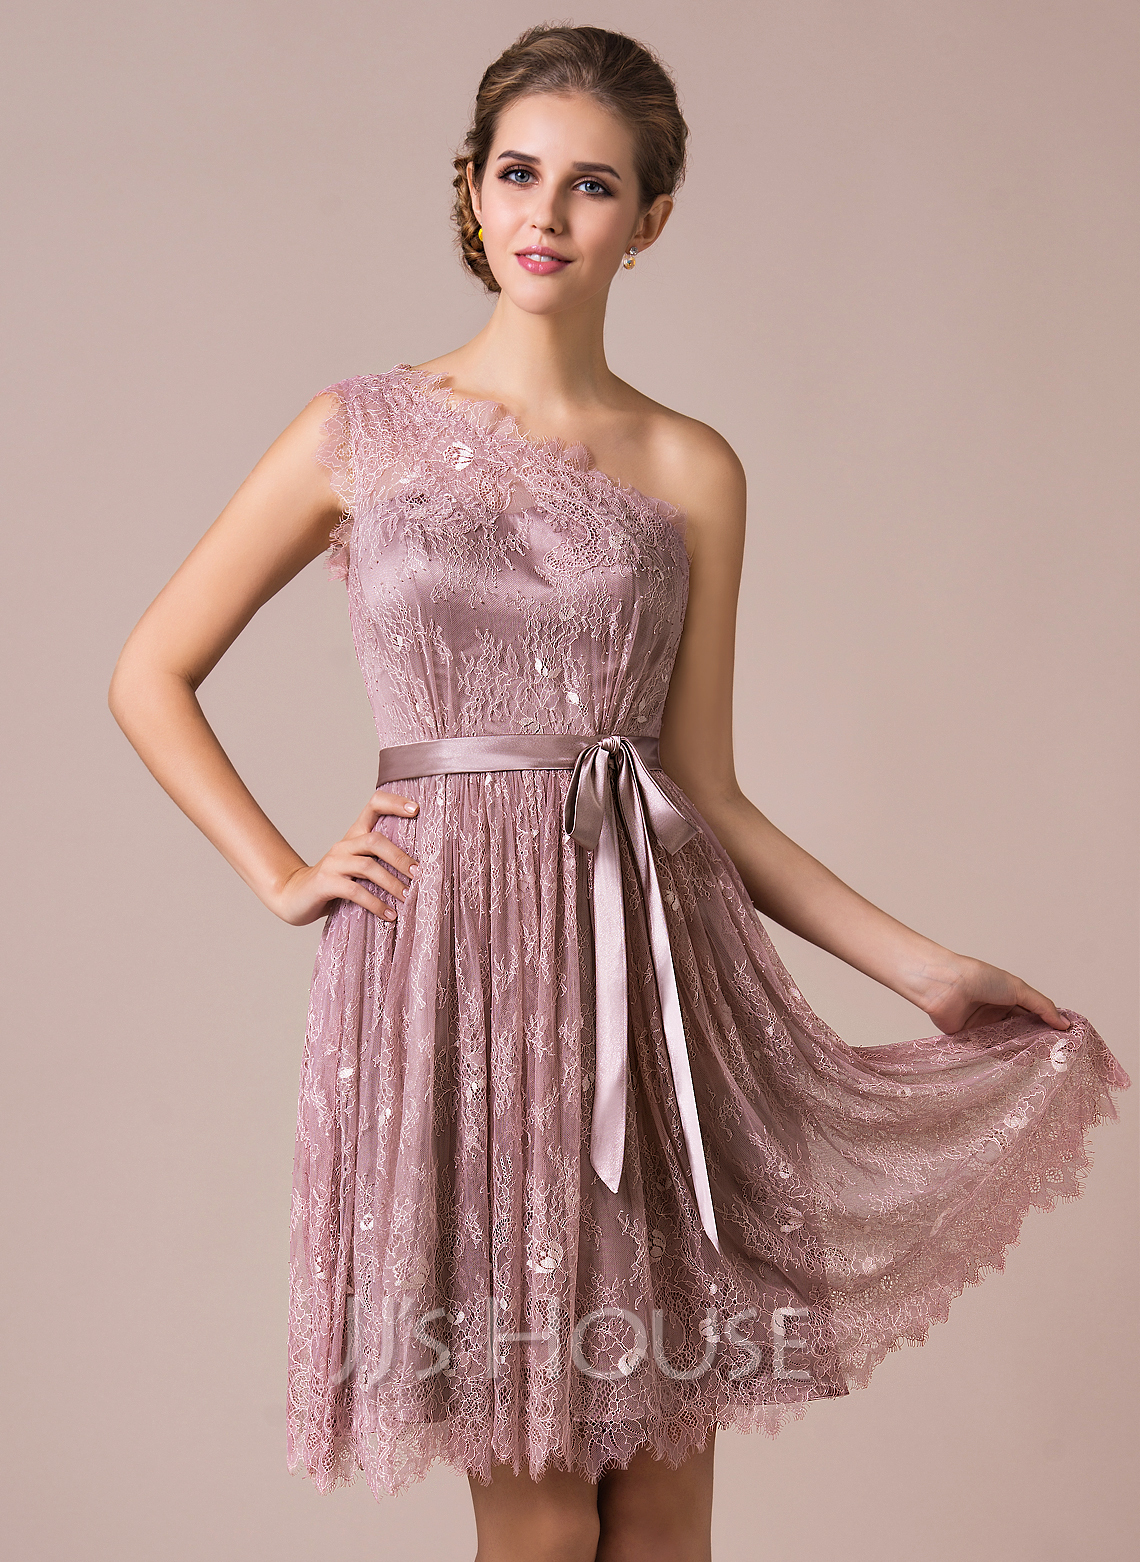 020552c1f95 A-Line One-Shoulder Knee-length Charmeuse Lace Bridesmaid Dress. Loading  zoom